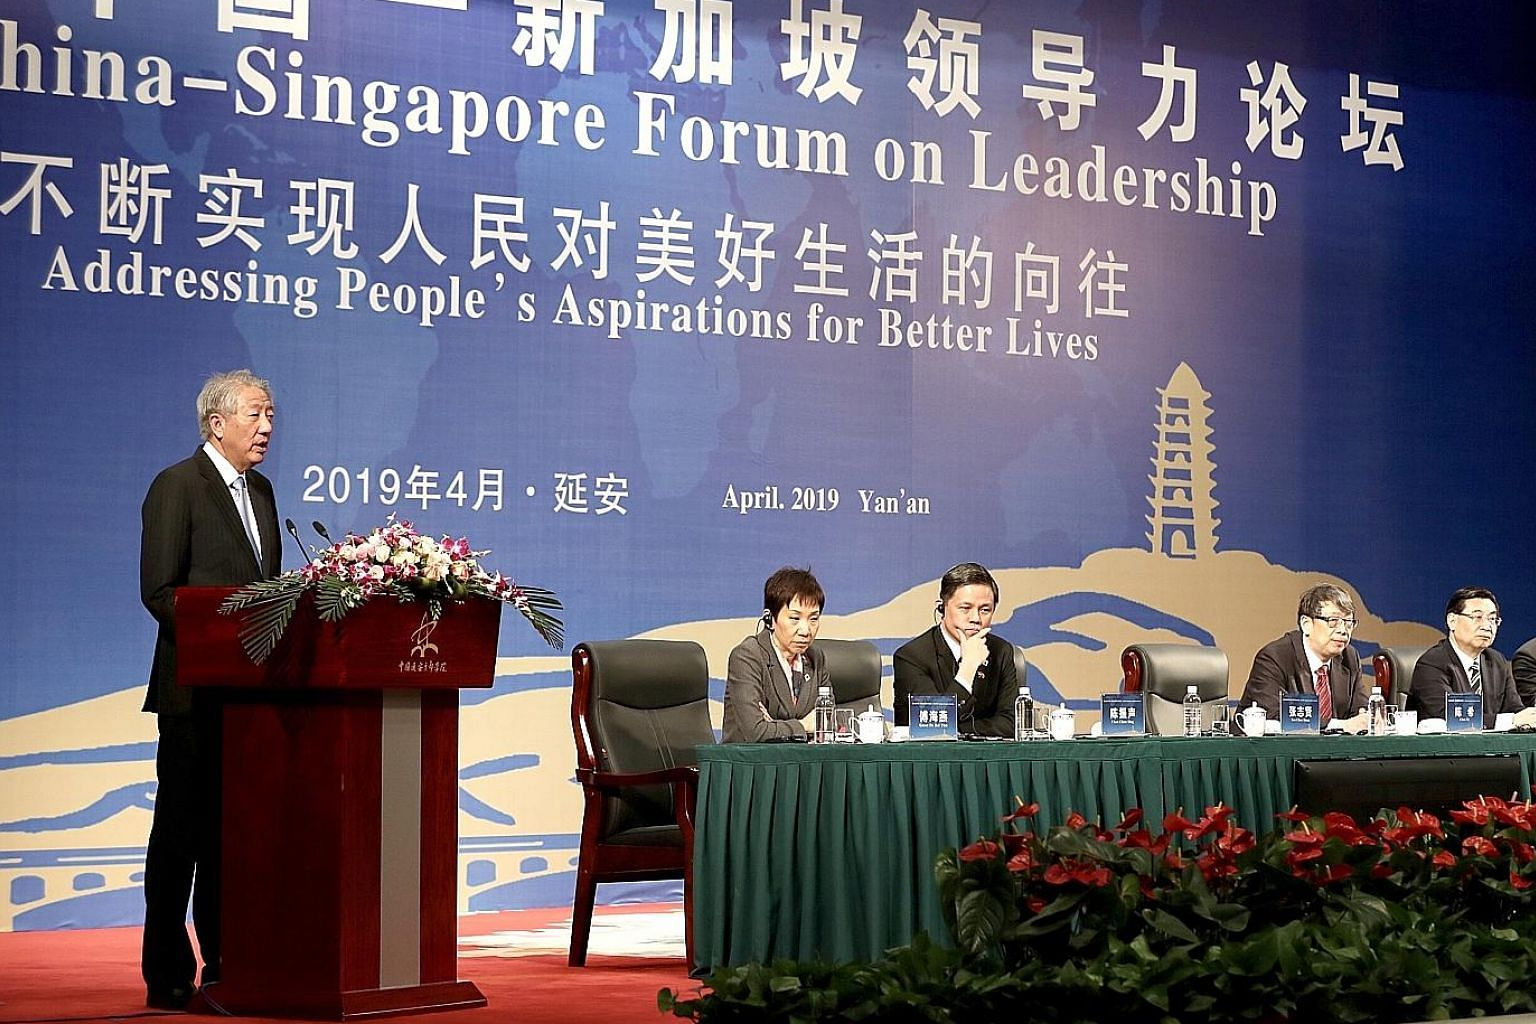 Deputy Prime Minister Teo Chee Hean giving the opening address at the 7th Singapore-China Forum on Leadership yesterday at the China Executive Leadership Academy in Yan'an in Shaanxi province. Also on the panel were (from left) Minister for Culture,